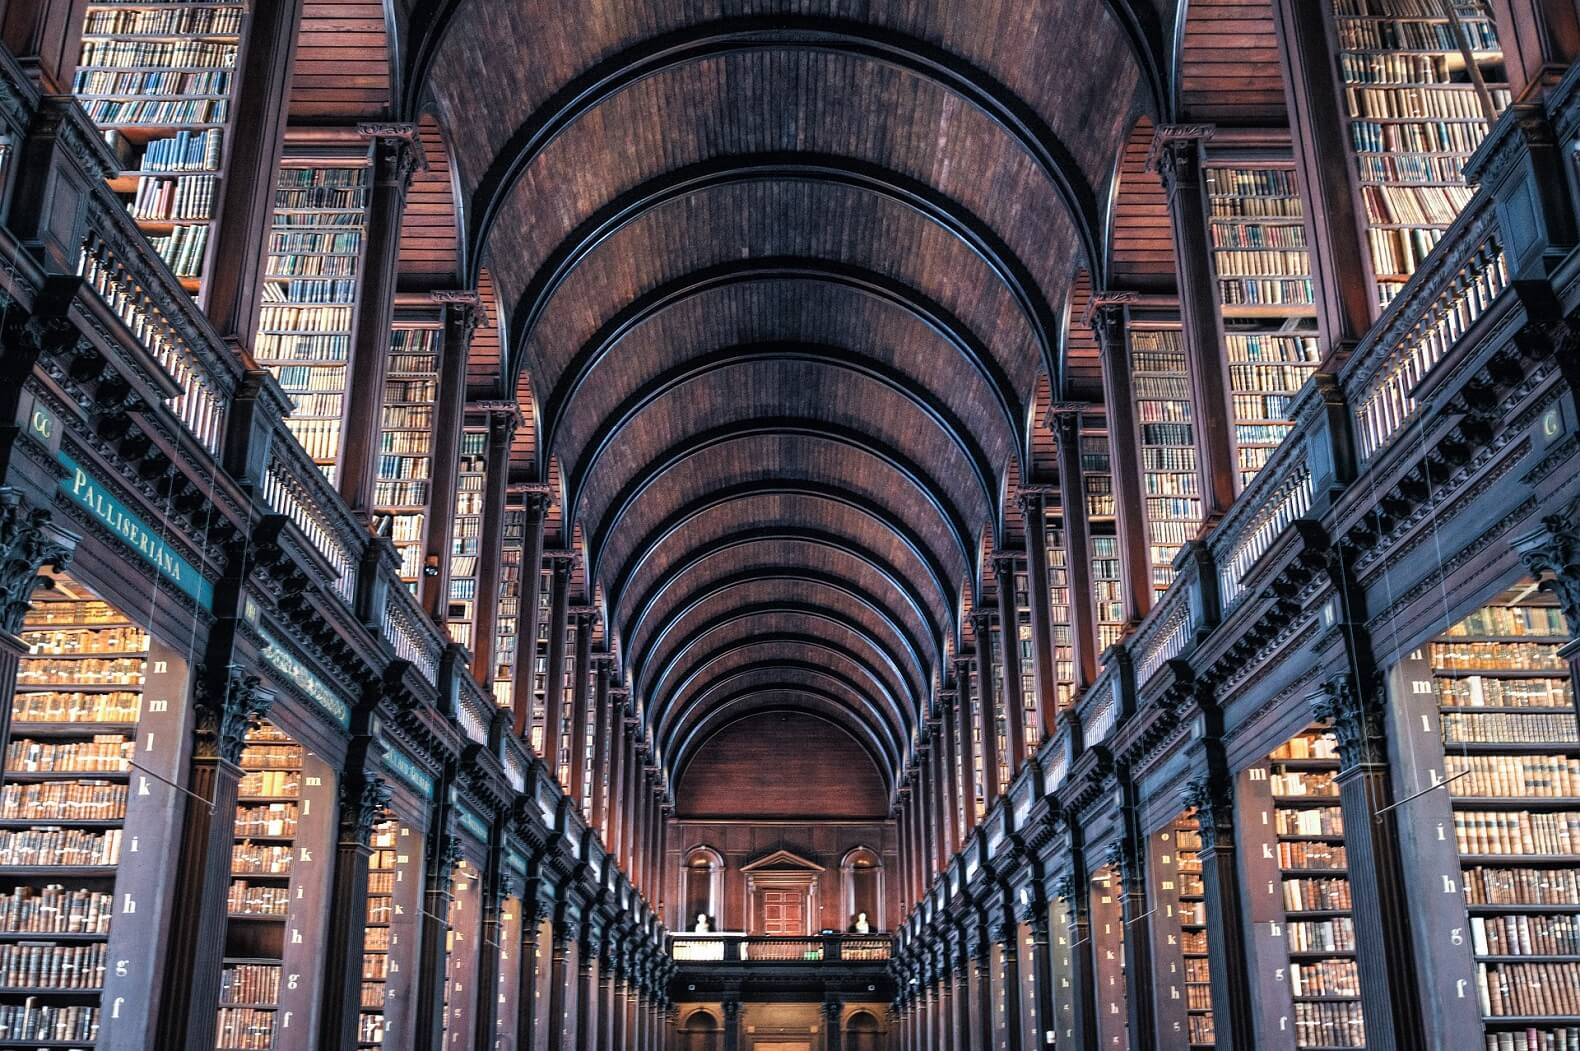 Fall in love with Ireland's literature